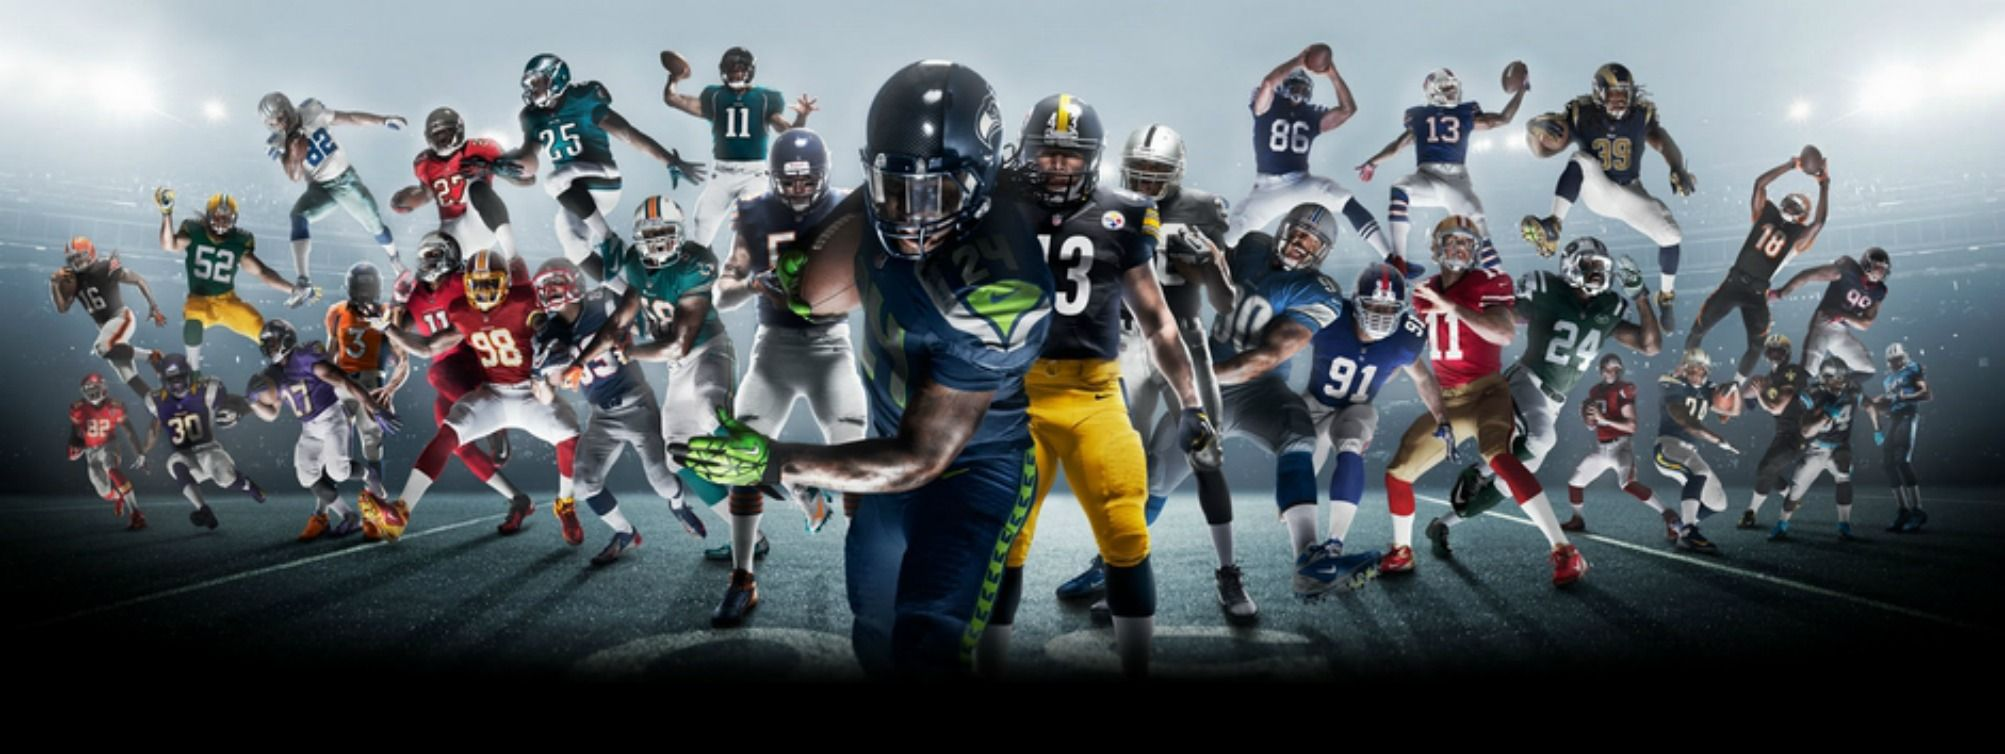 Collection of Cool Football Background on HDWallpapers